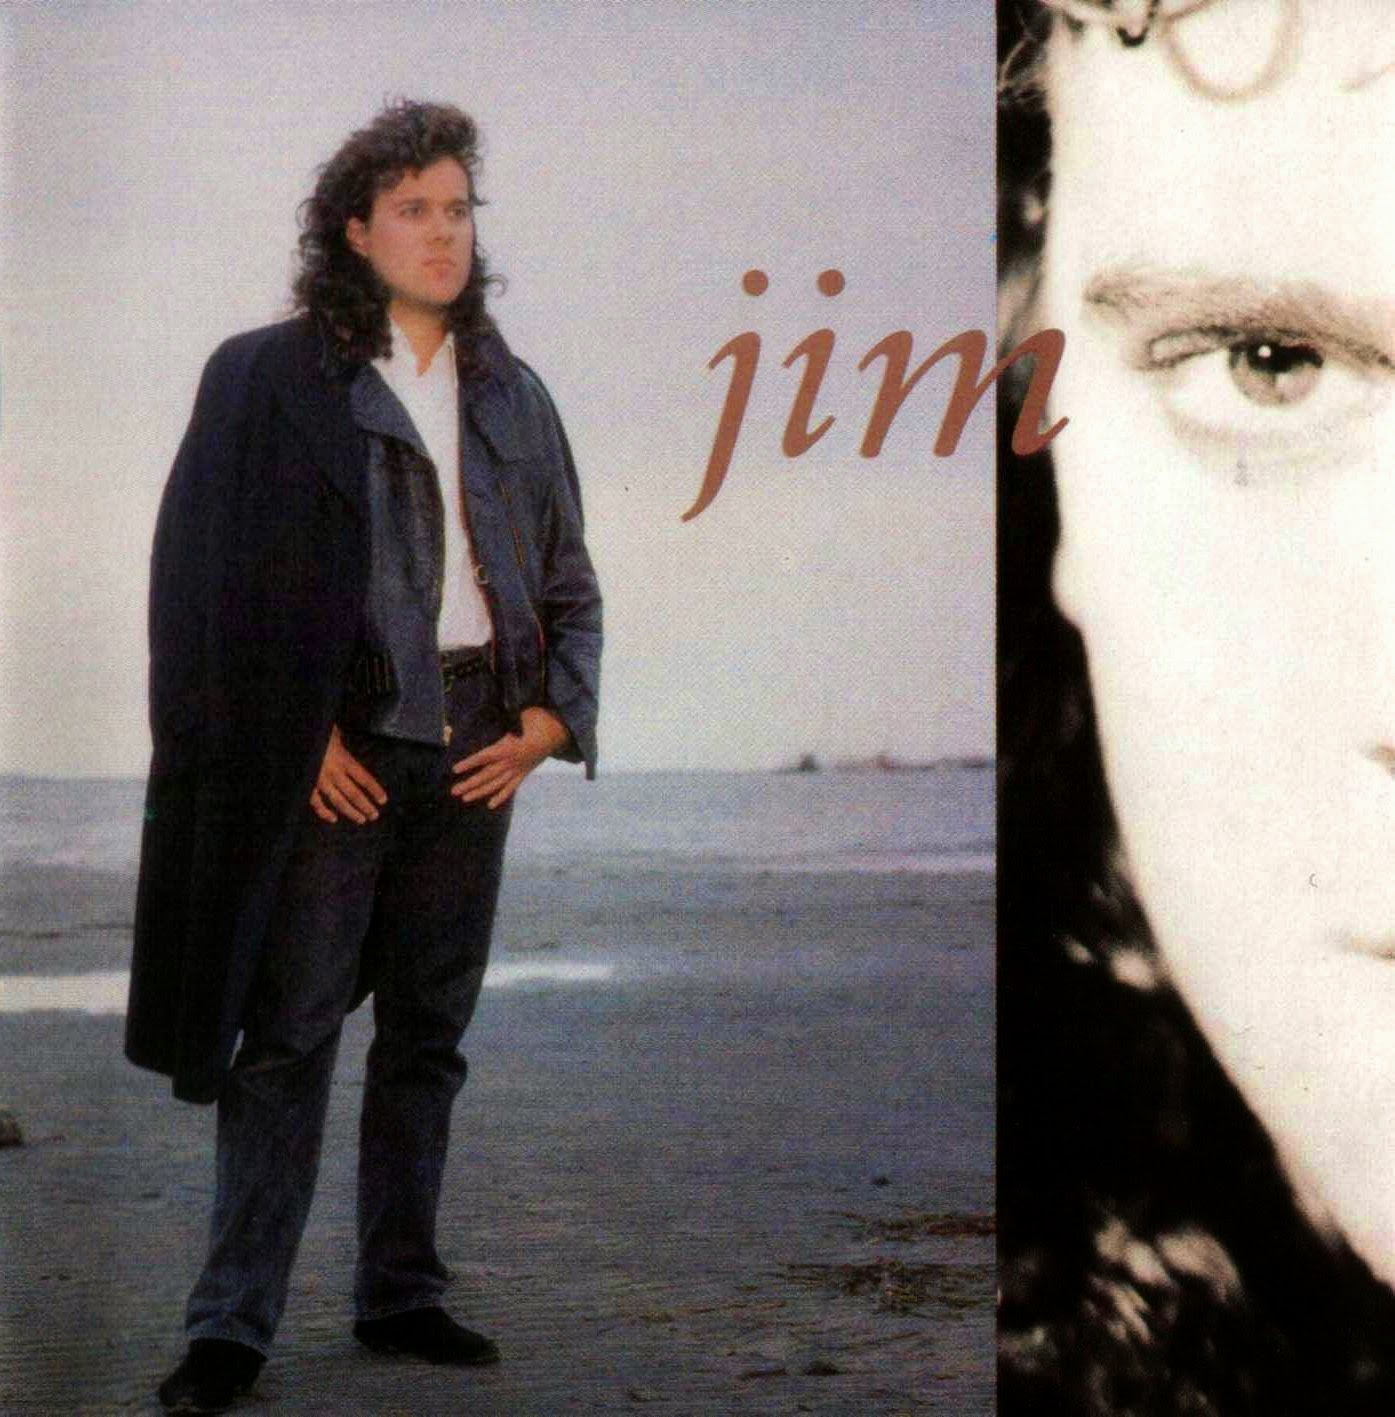 Jim Jidhed Jim 1990 aor melodic rock